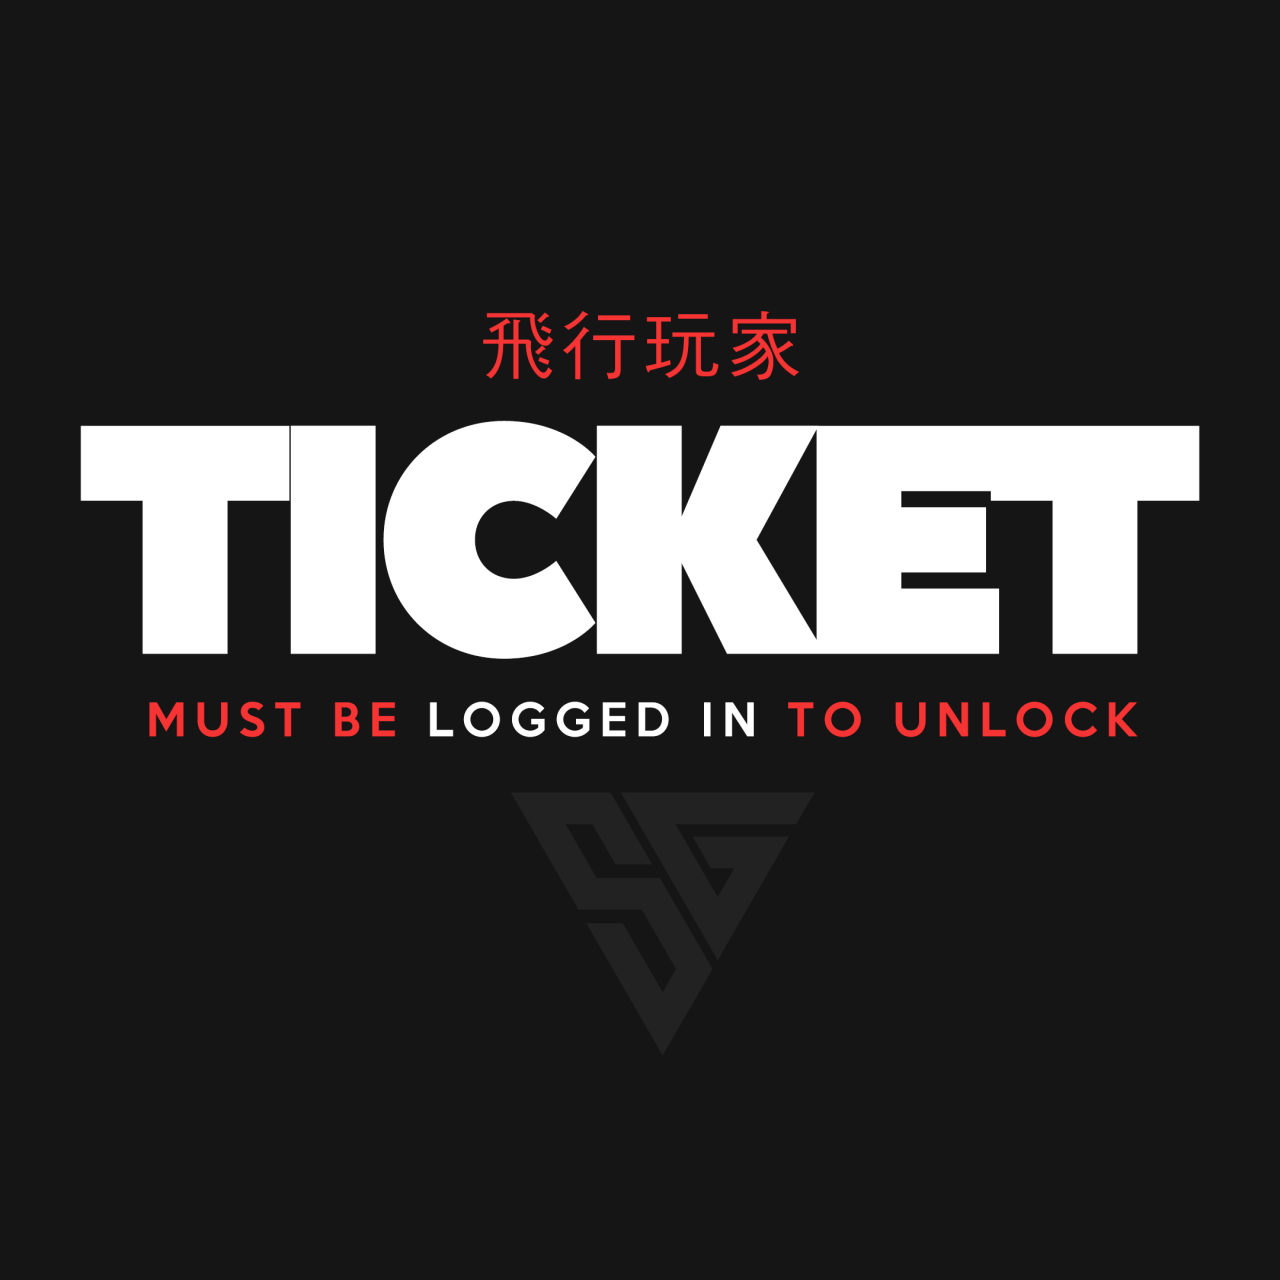 ticket-login